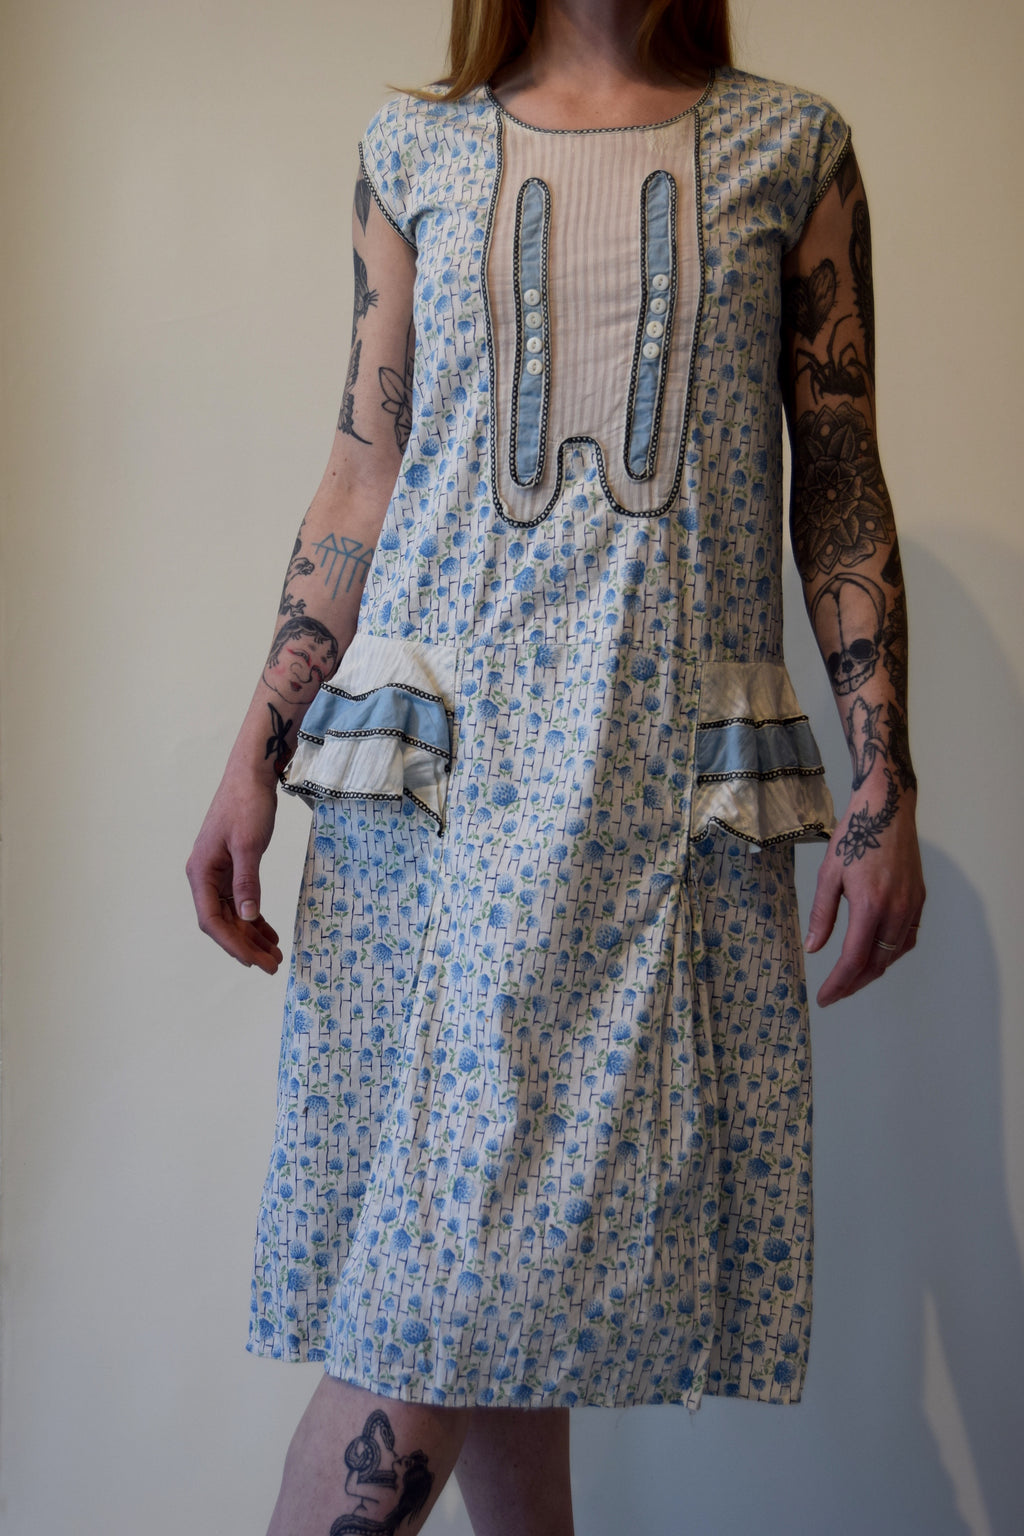 Vintage 1920's Cotton Blue Floral Day Dress with Ruffle Hips FREE SHIPPING